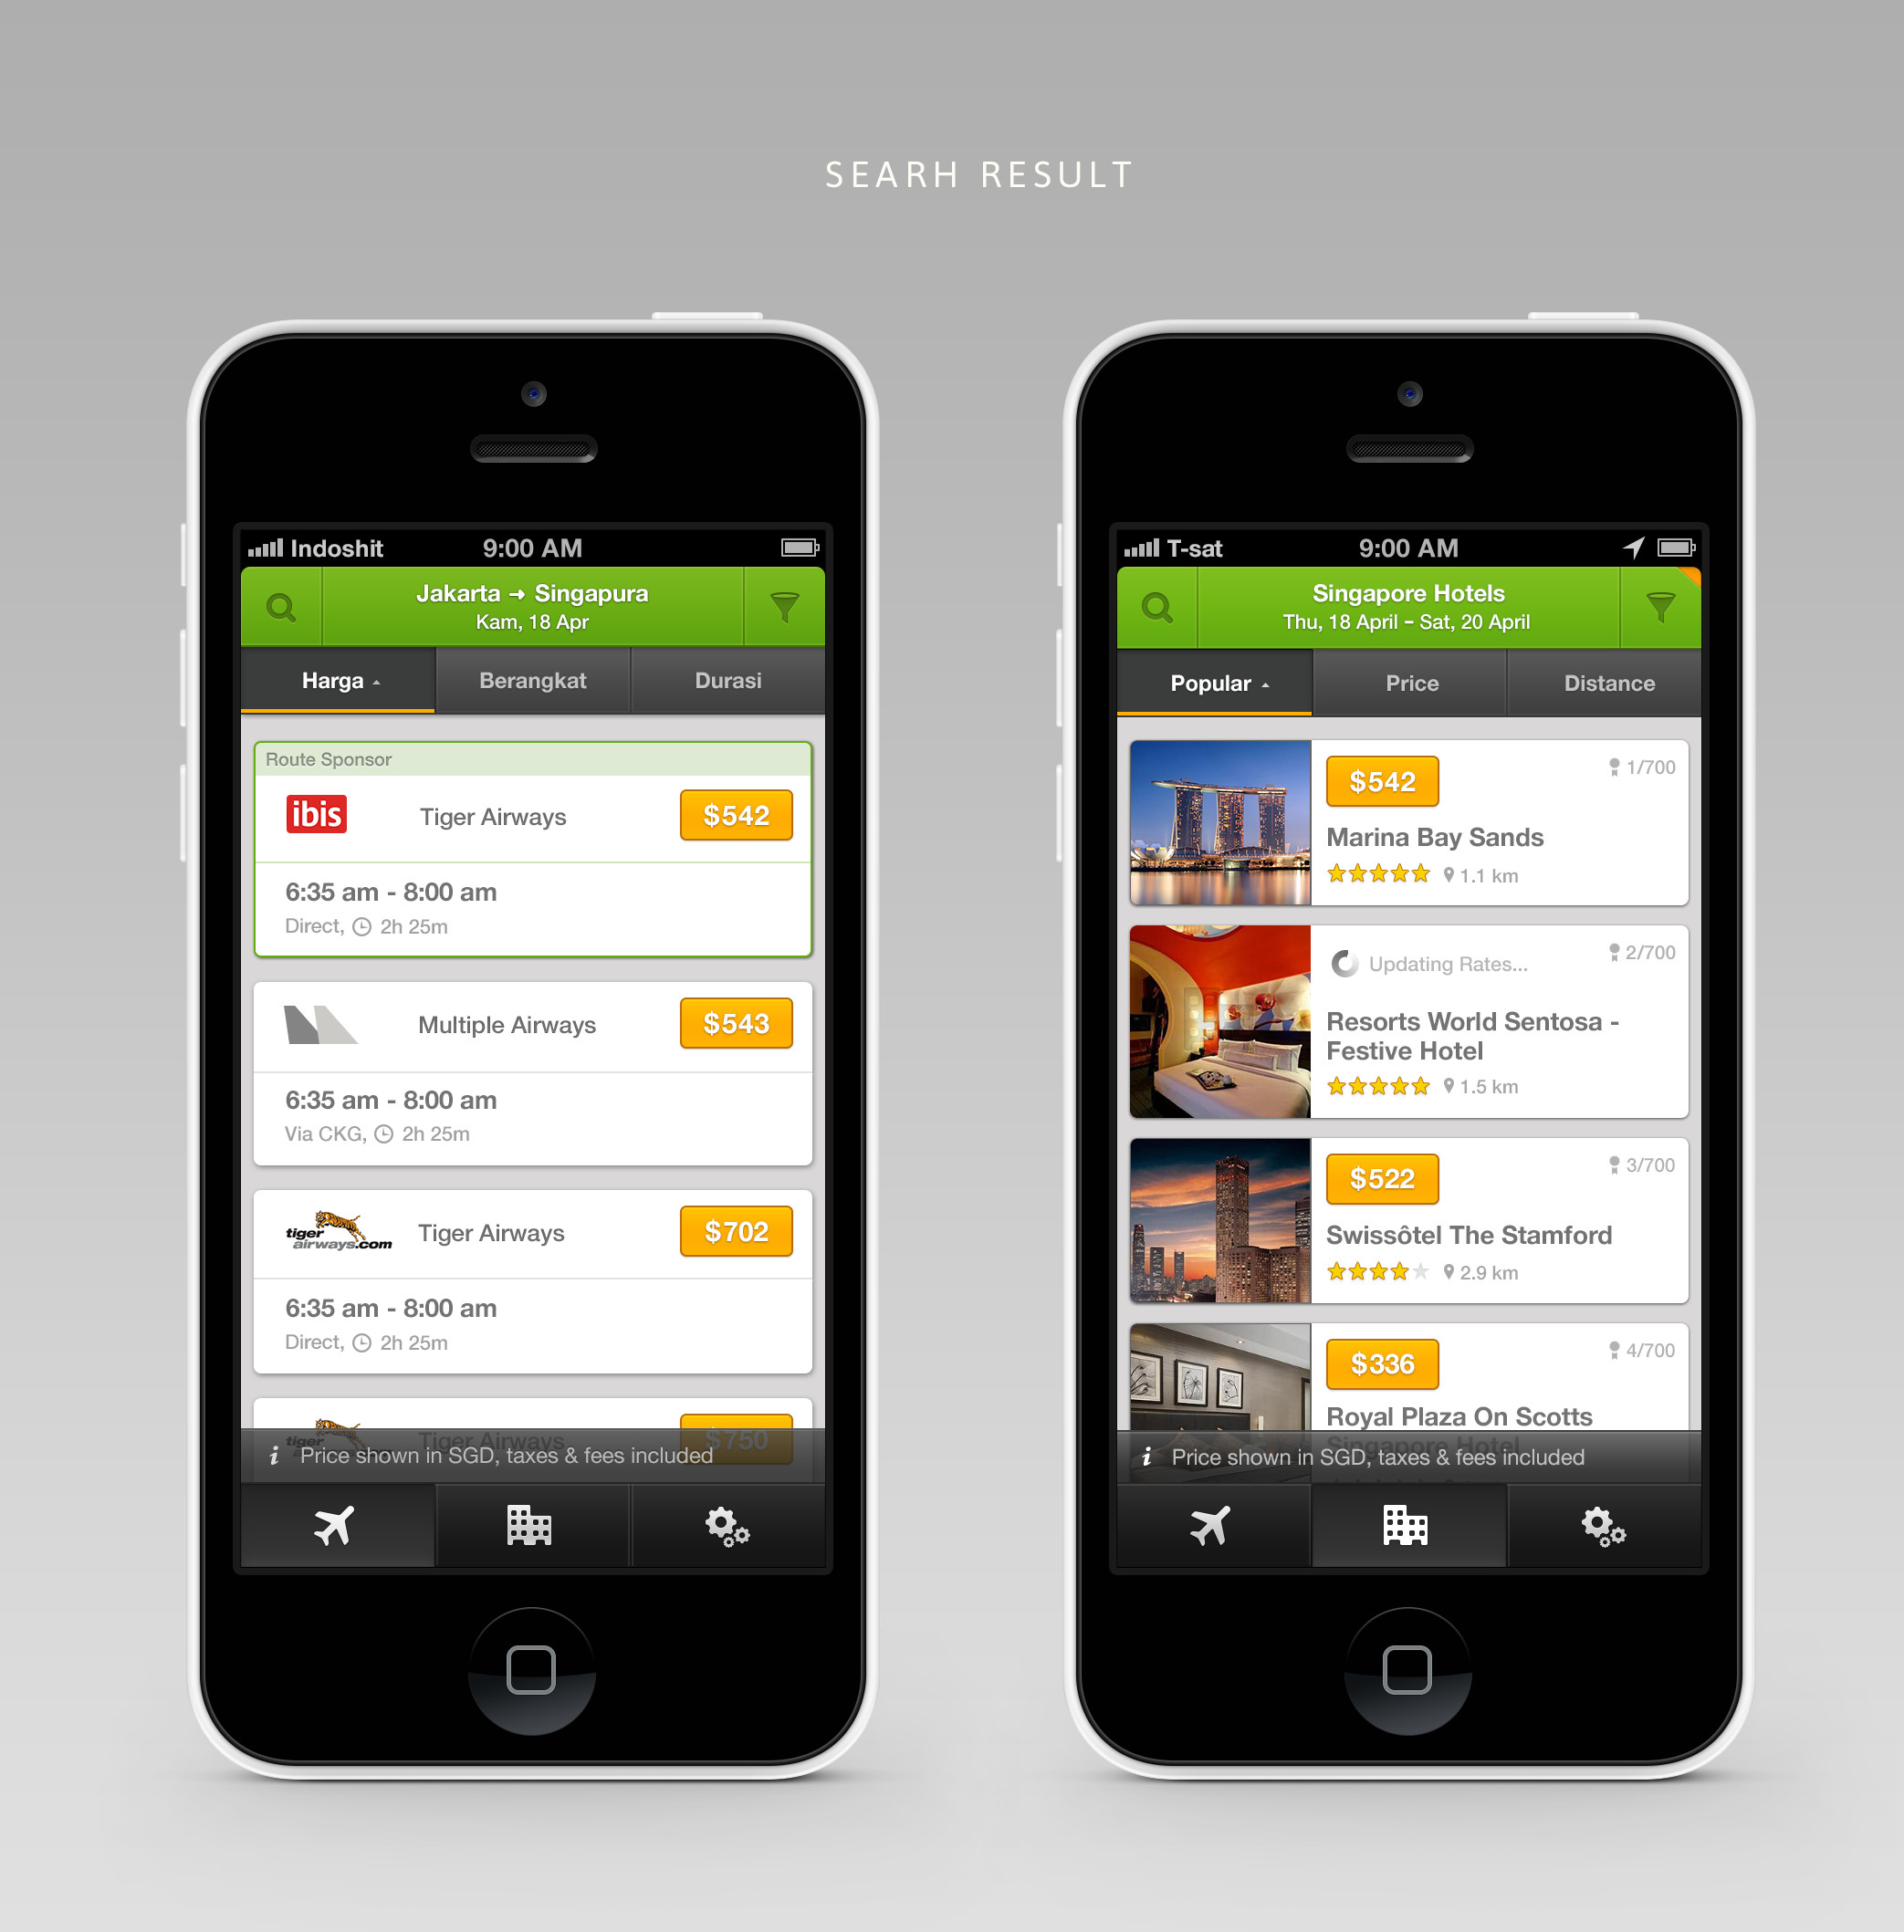 flight search result on the left (one way). Hotel search result on the right